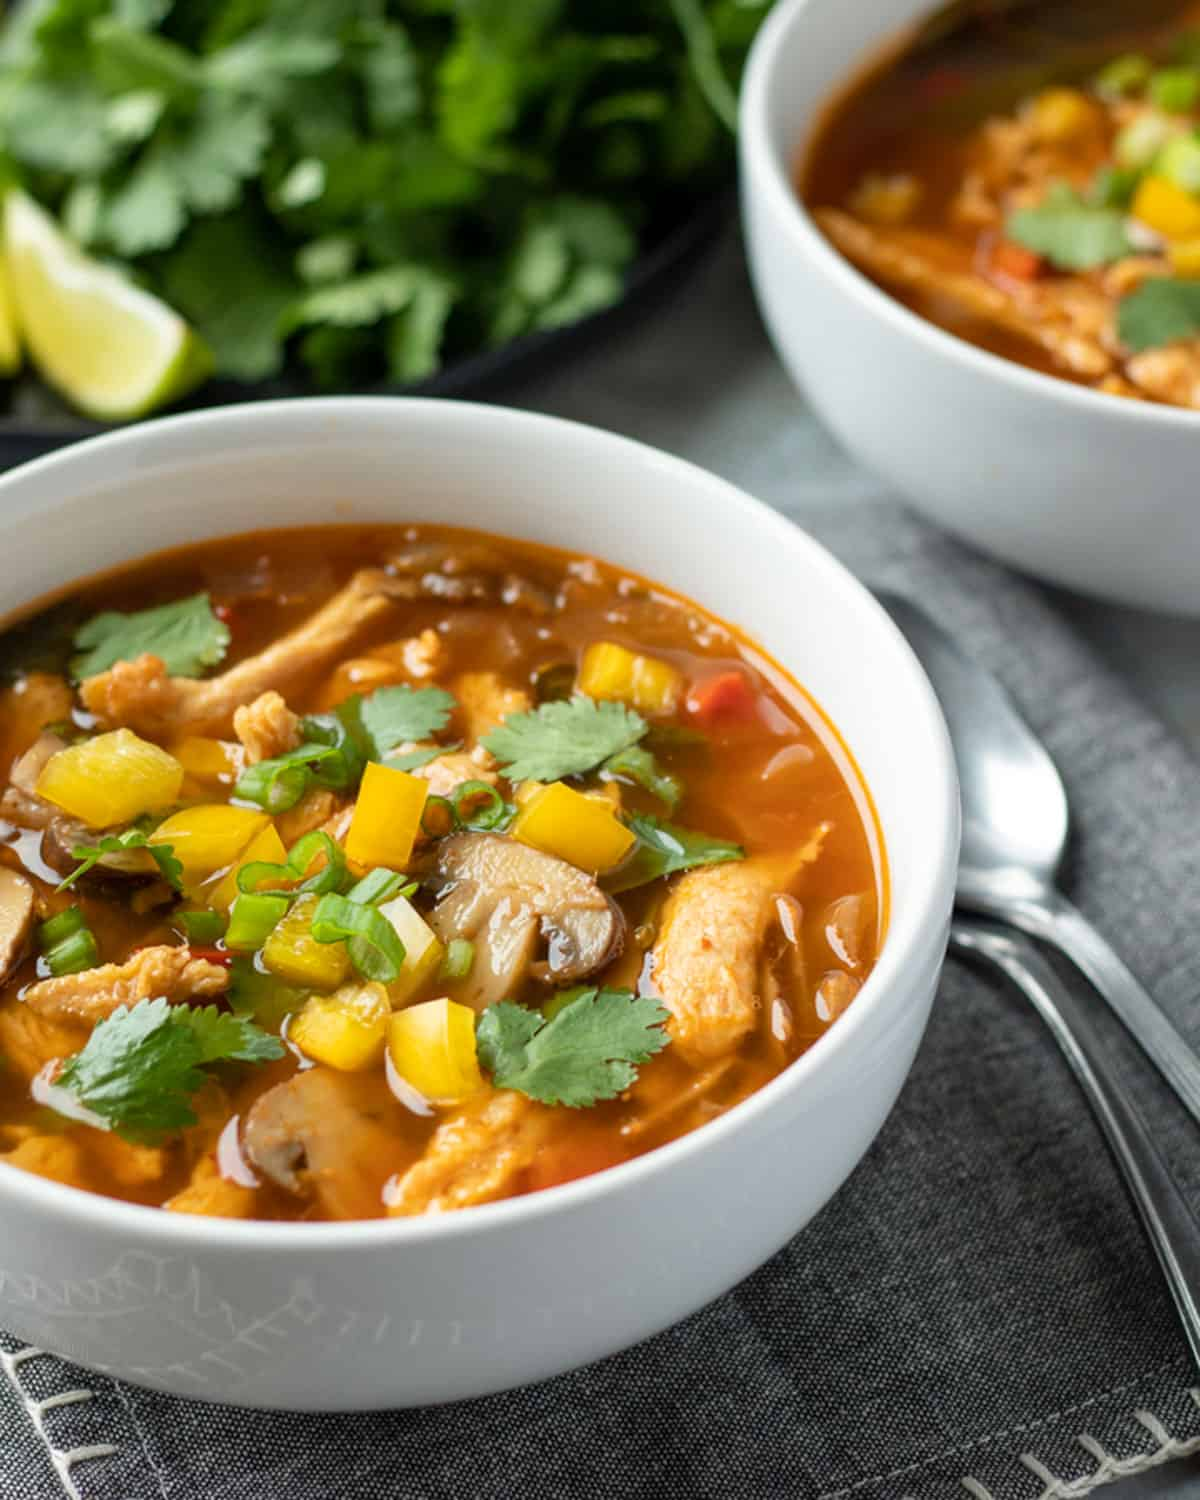 colorful Thai-inspired soup with yellow pepper, mushrooms, and soy curls.